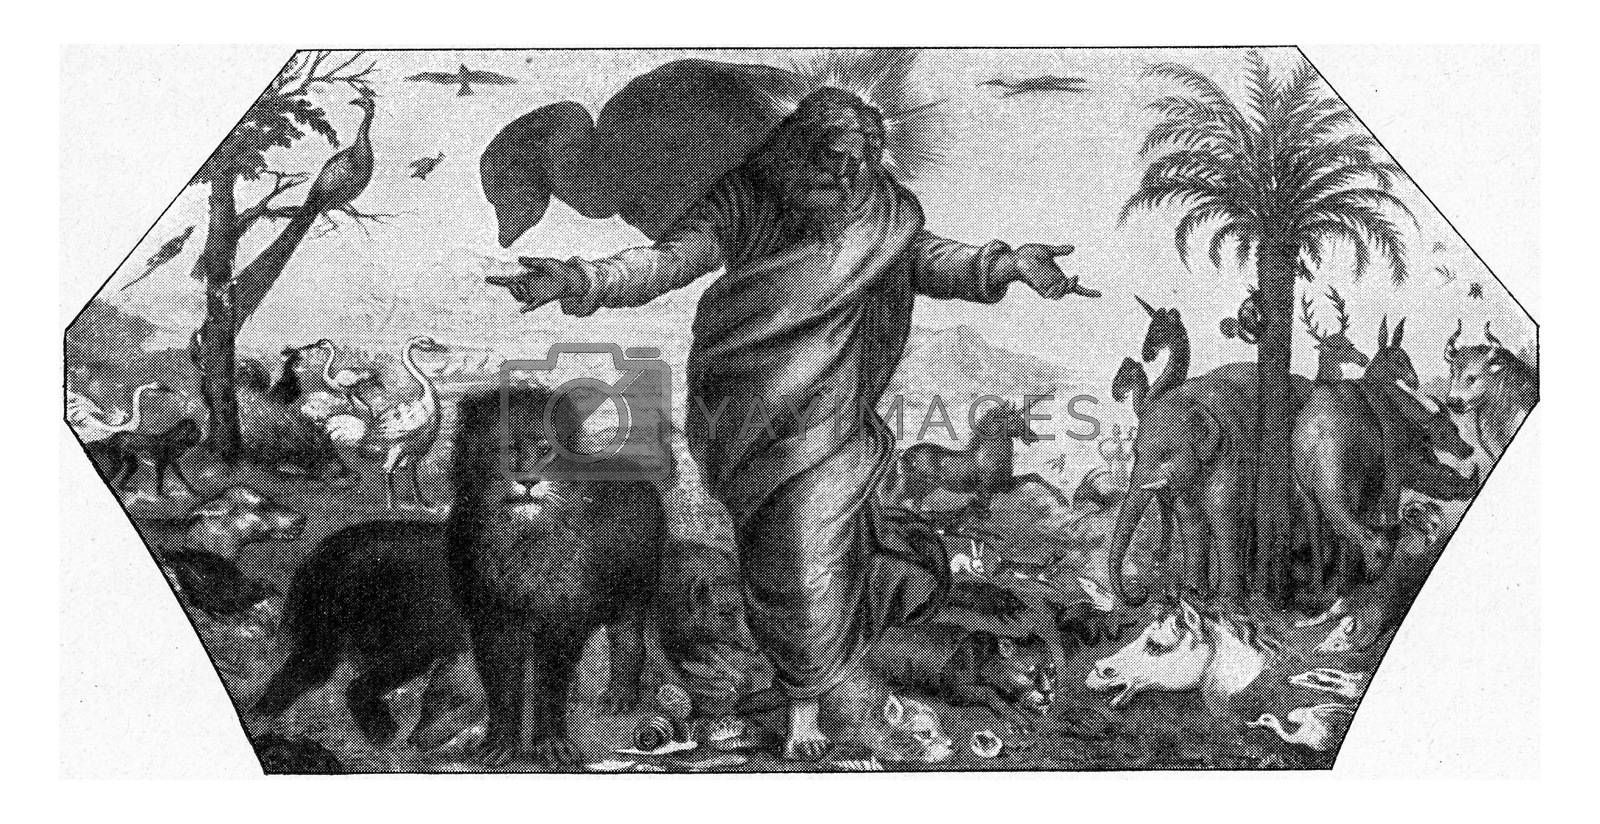 The creation of animals, vintage engraved illustration. From the Universe and Humanity, 1910.